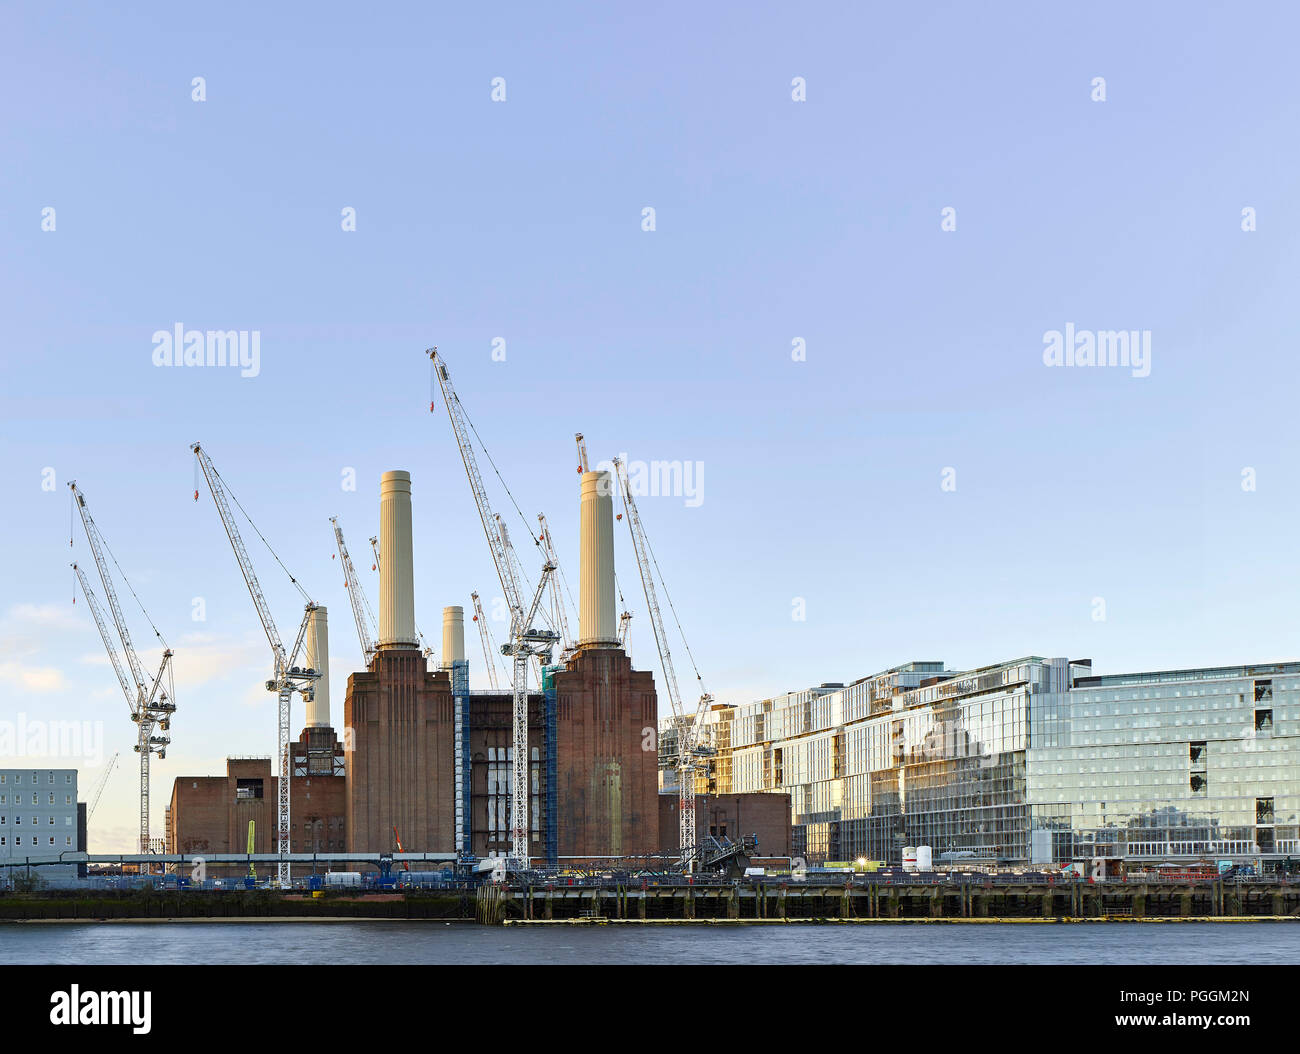 View across river Thames. Battersea Power Station, under construction, London, United Kingdom. Architect: Sir Giles Gilbert Scott, 1953. - Stock Image